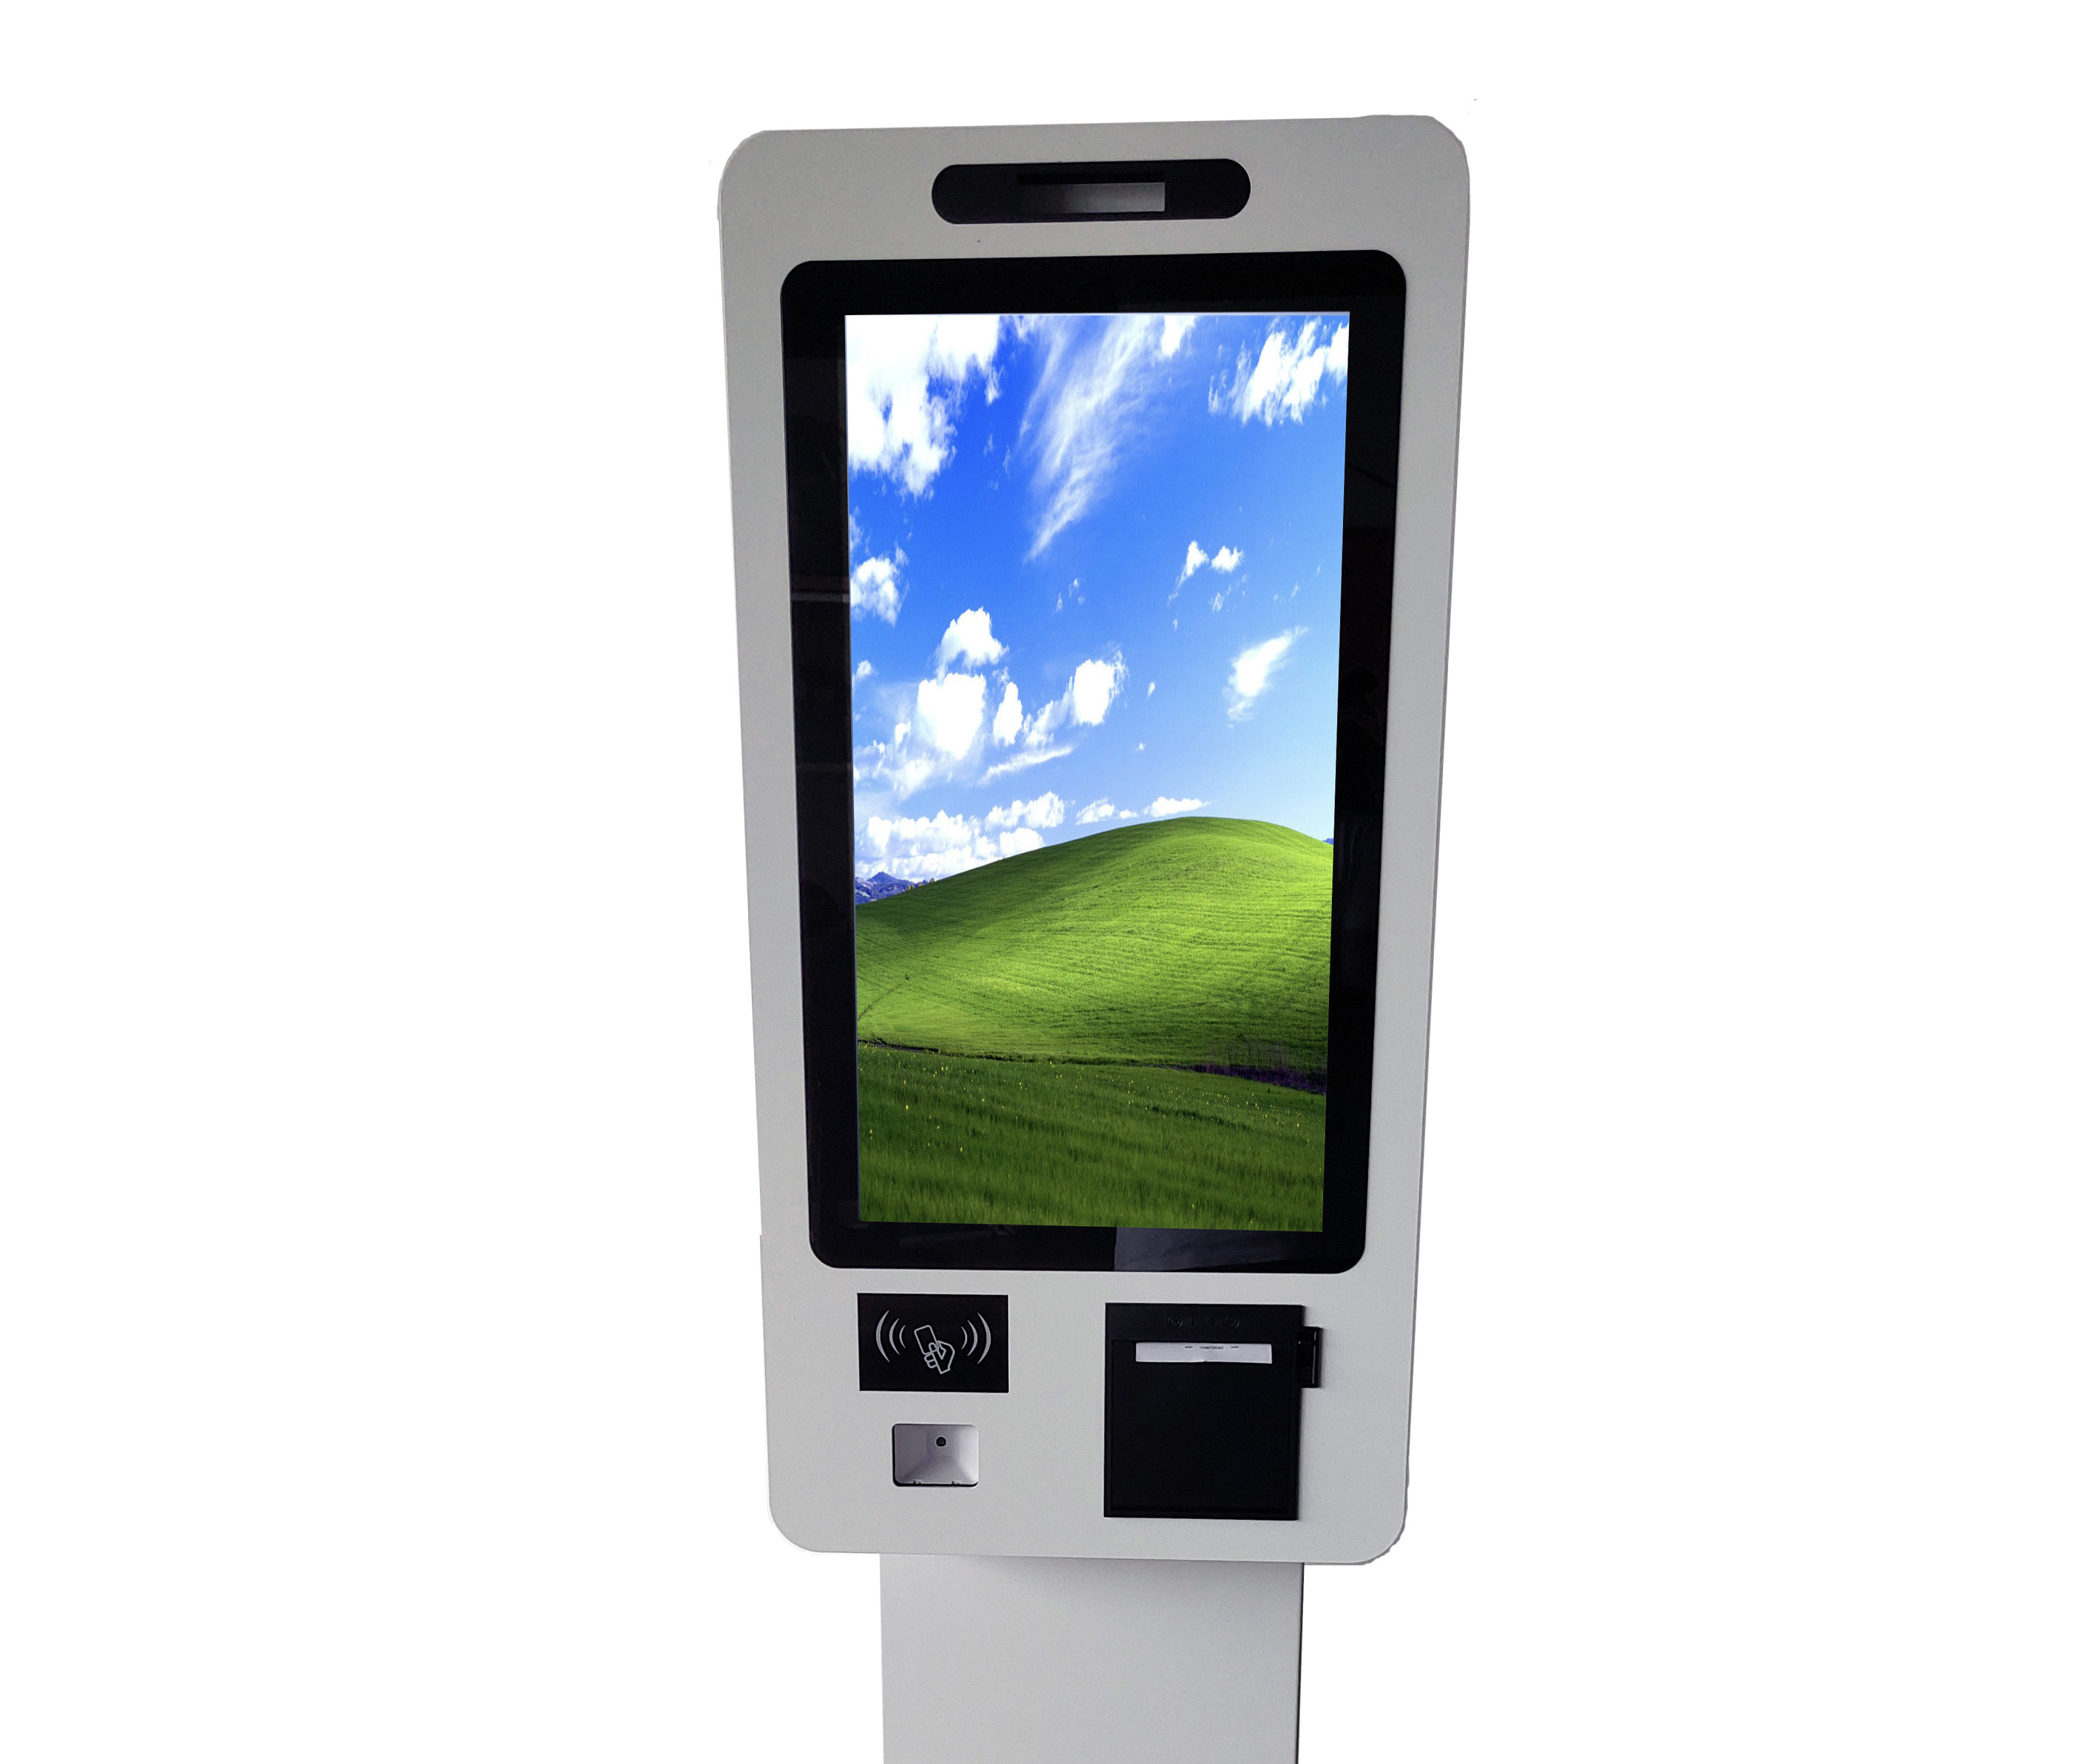 All In One 21.5 inch Capacitive Touch Screen Kiosk terminal cash <strong>payment</strong> machine with printer and scanner